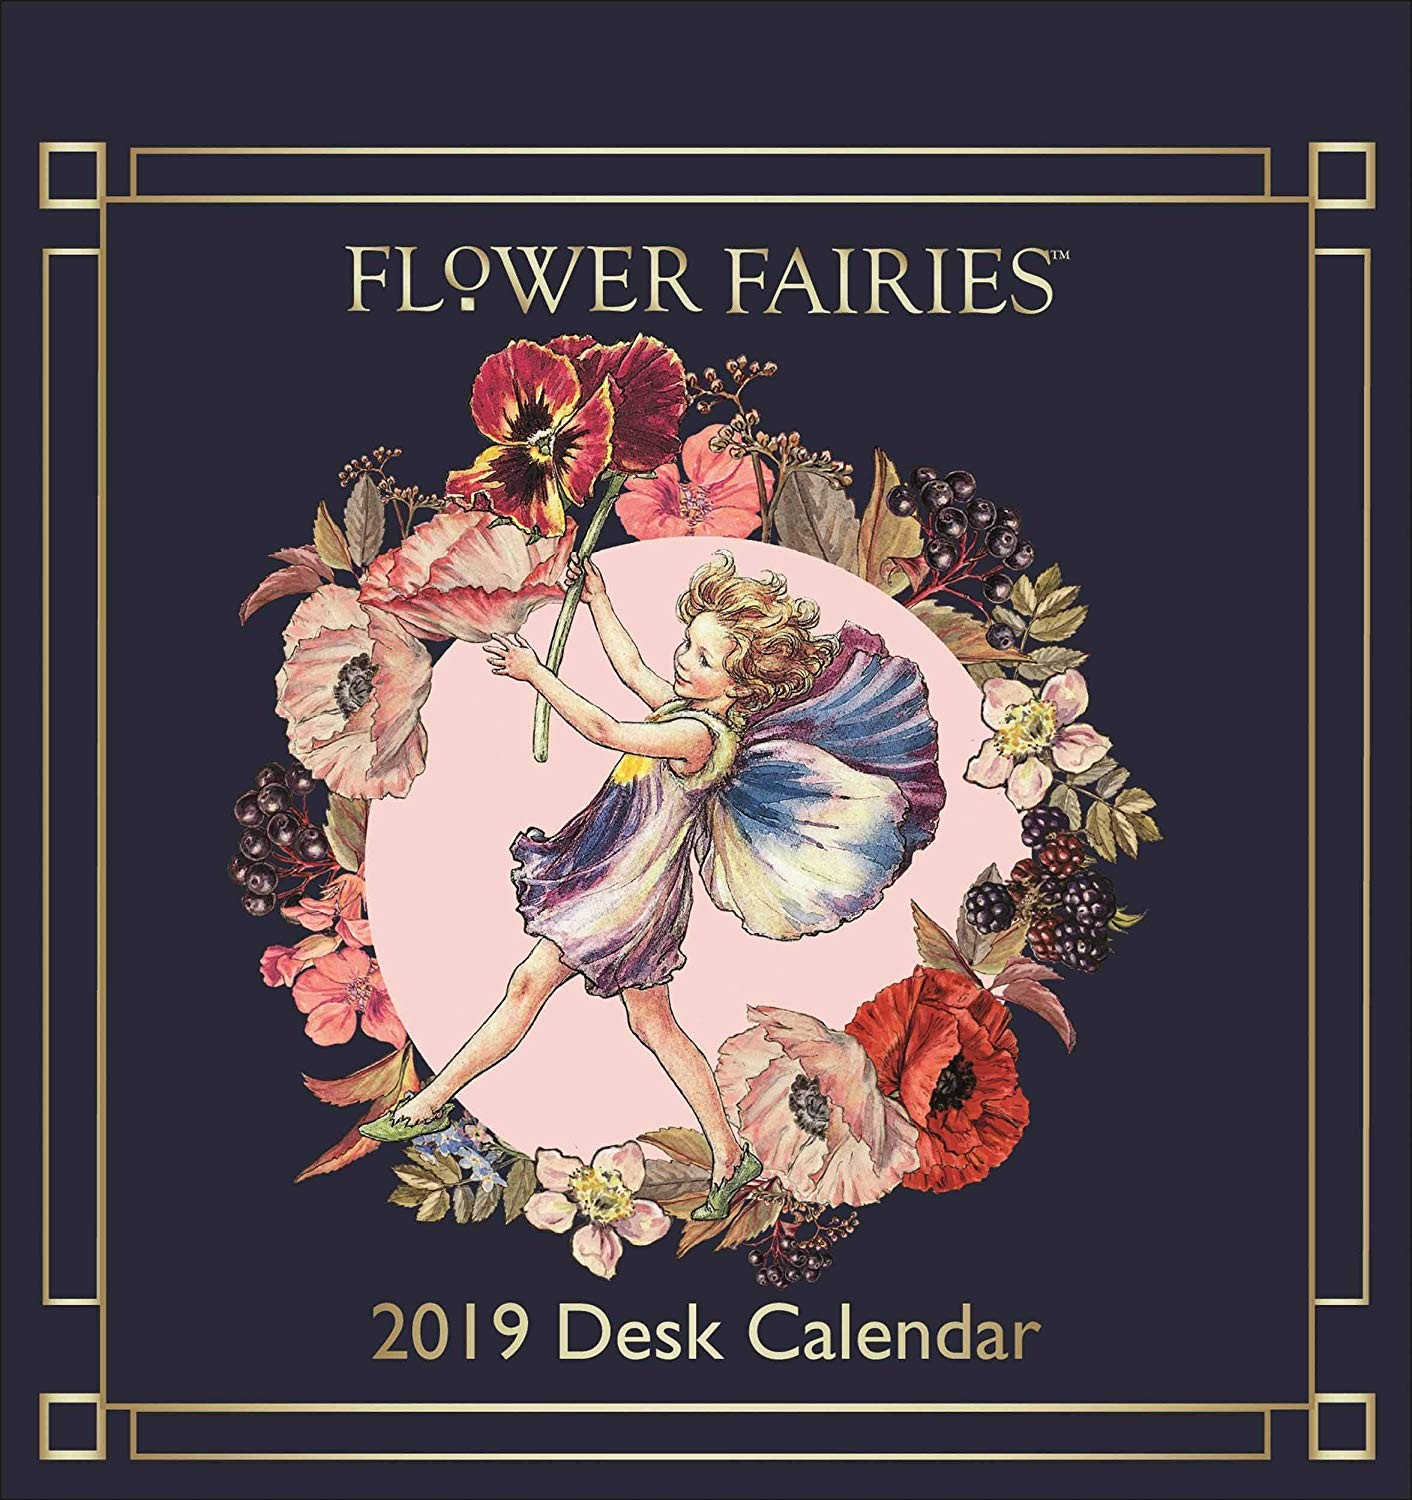 Calendario 2019 Con Festivos Galicia Actual Calendario De Escritorio 2019 Dise±o De Hadas De Flores Amazon Of Calendario 2019 Con Festivos Galicia Más Reciente Calendario Anual De Pared Con D­as Festivos Din A0 Blanco Y Gris